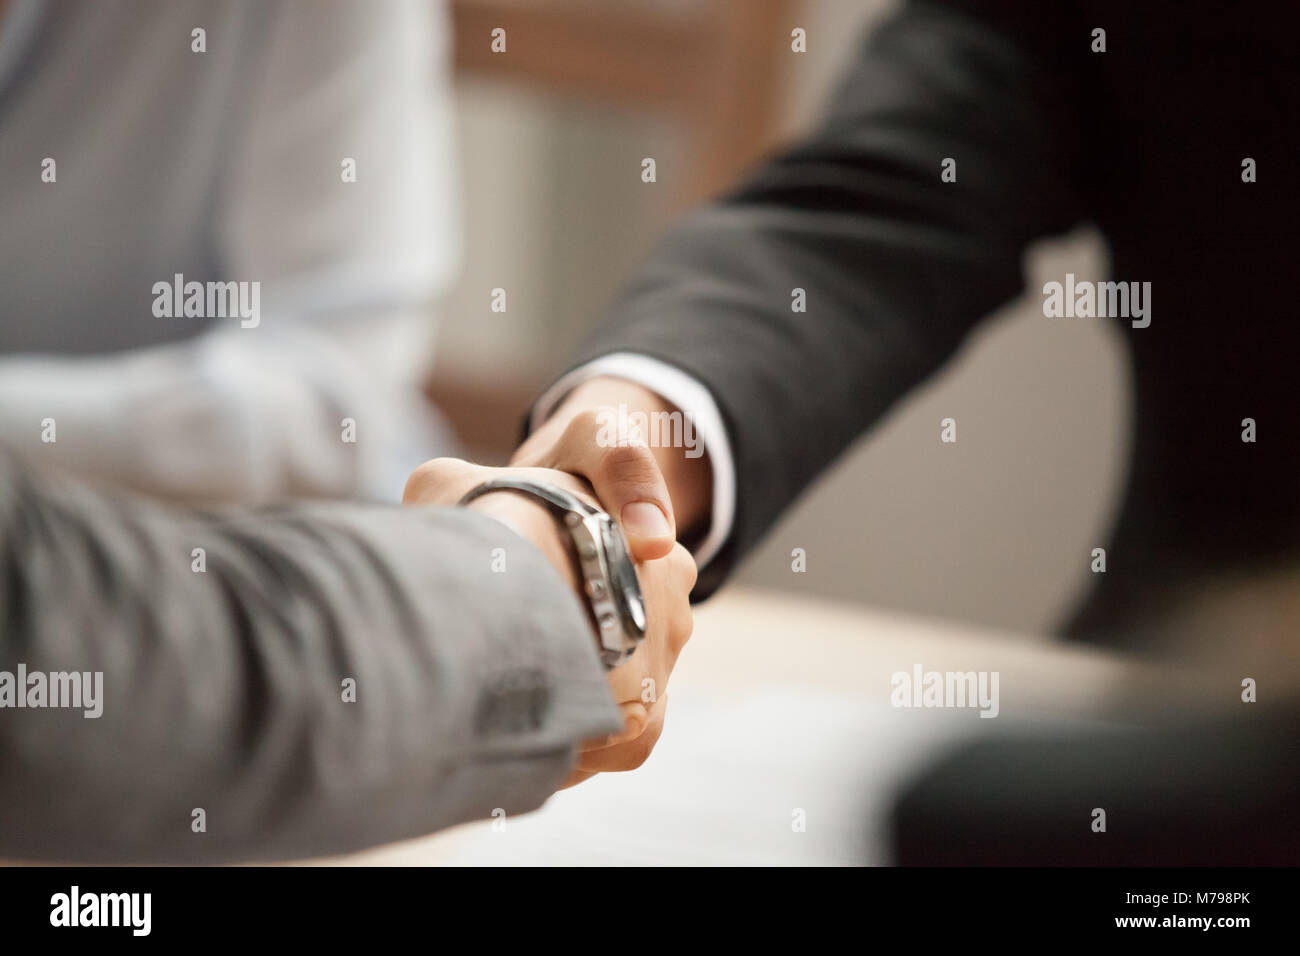 Two businessmen in suits shaking hands at meeting, close up - Stock Image